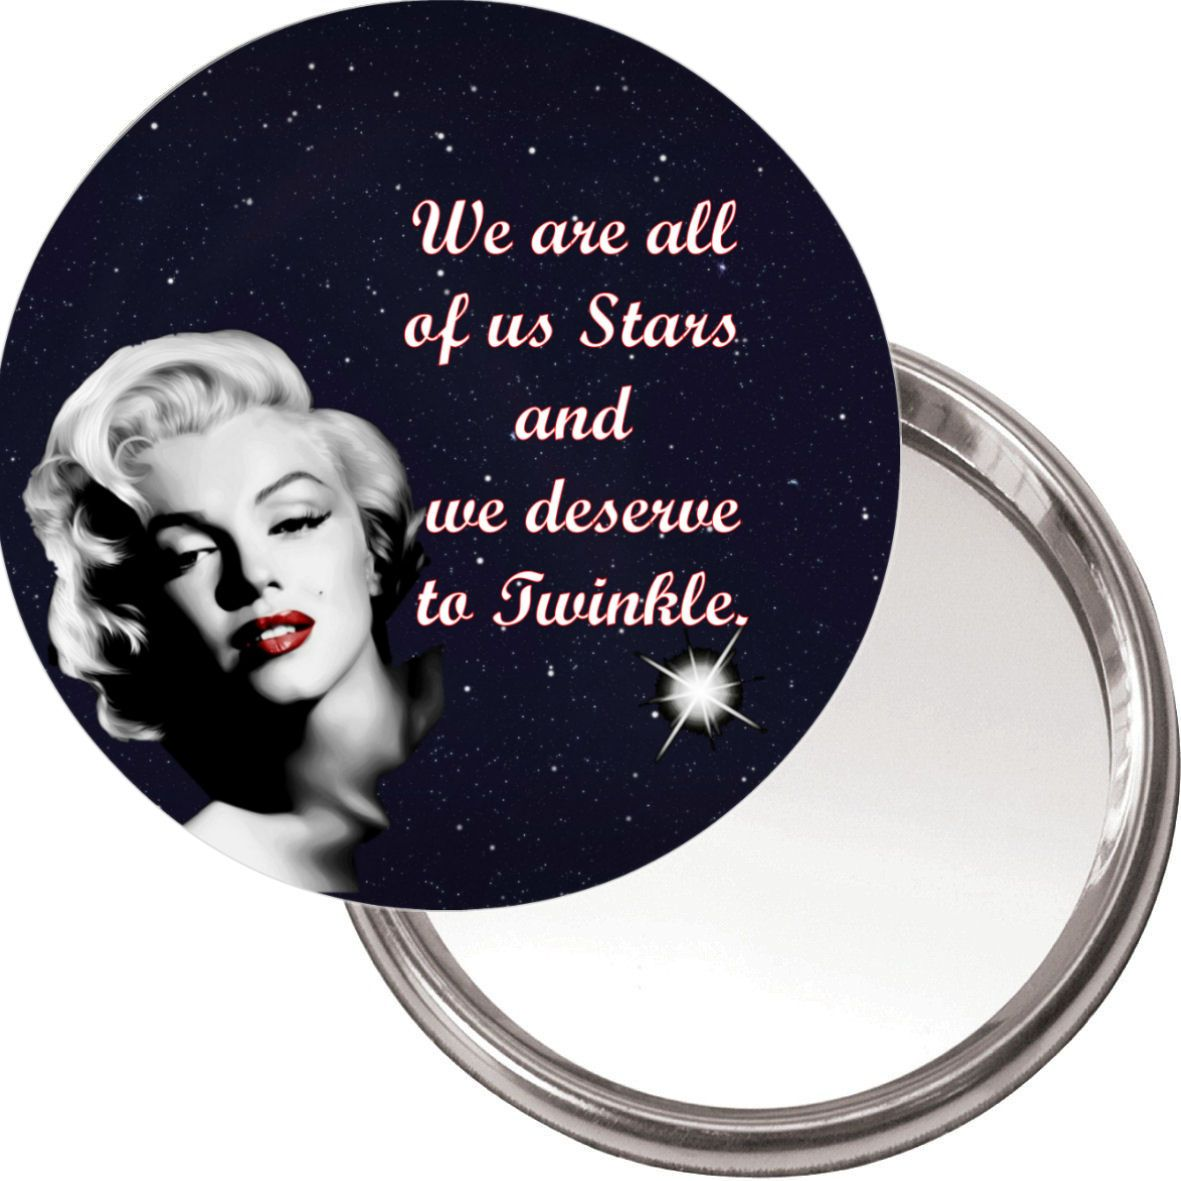 Compact Makeup Button Mirror With Marilyn Monroe Image We